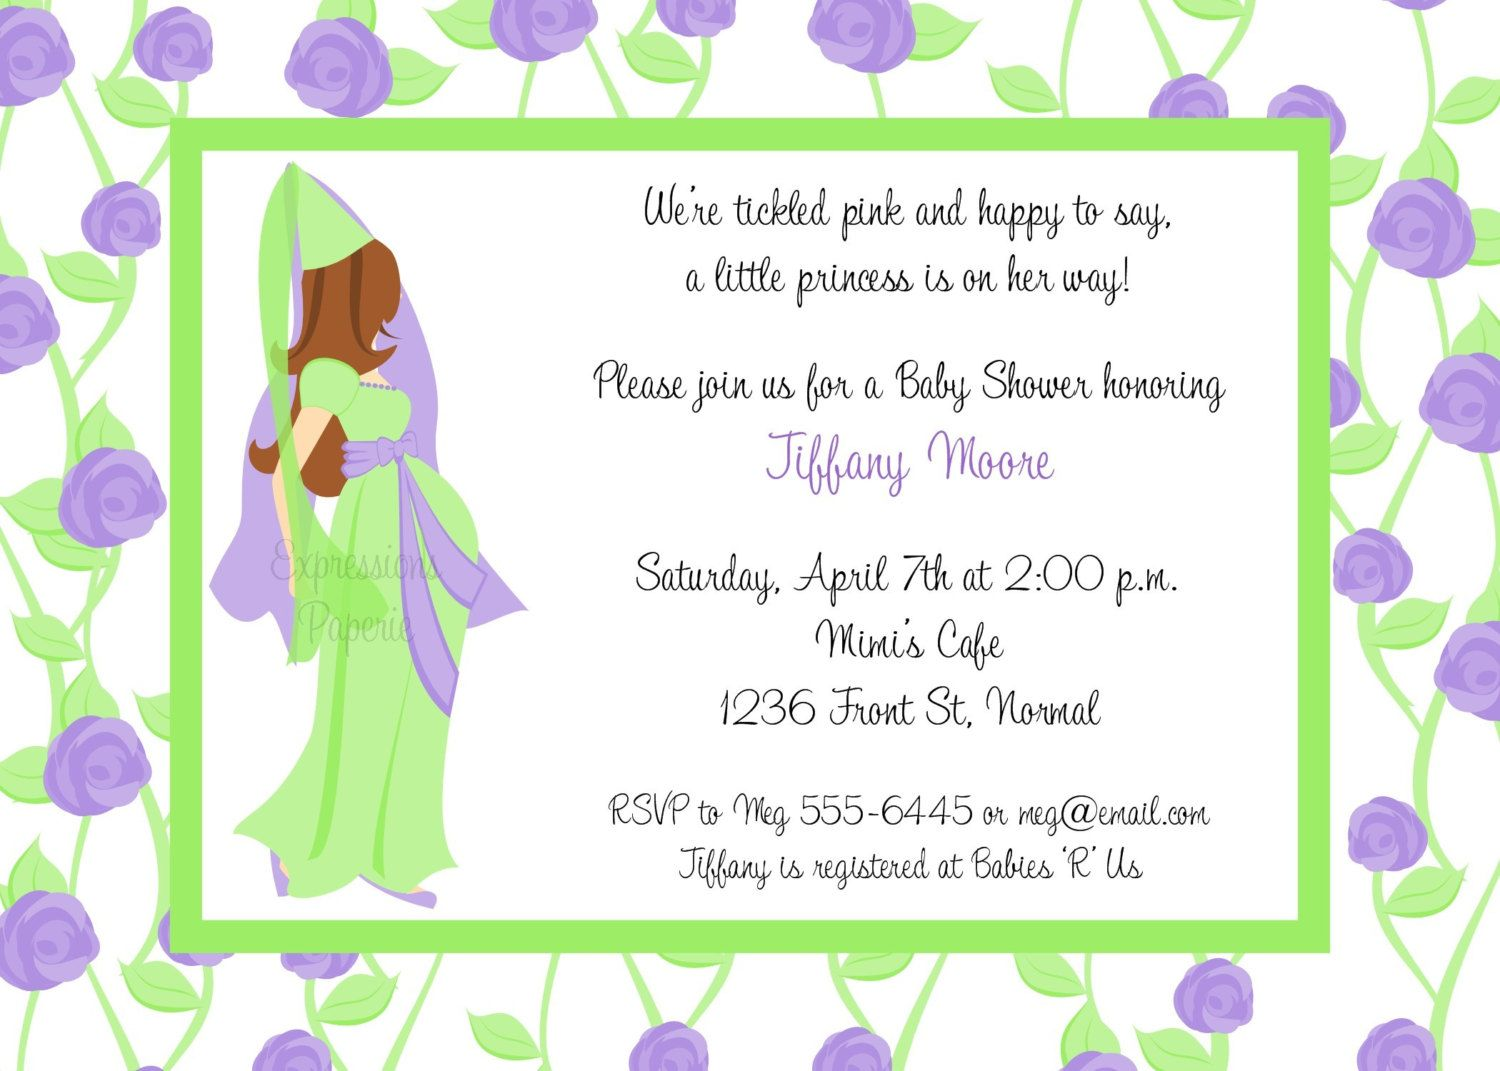 Baby shower invitation wording sale are 10 personalized themed baby shower invitation wording sale are 10 personalized themed mommy to be filmwisefo